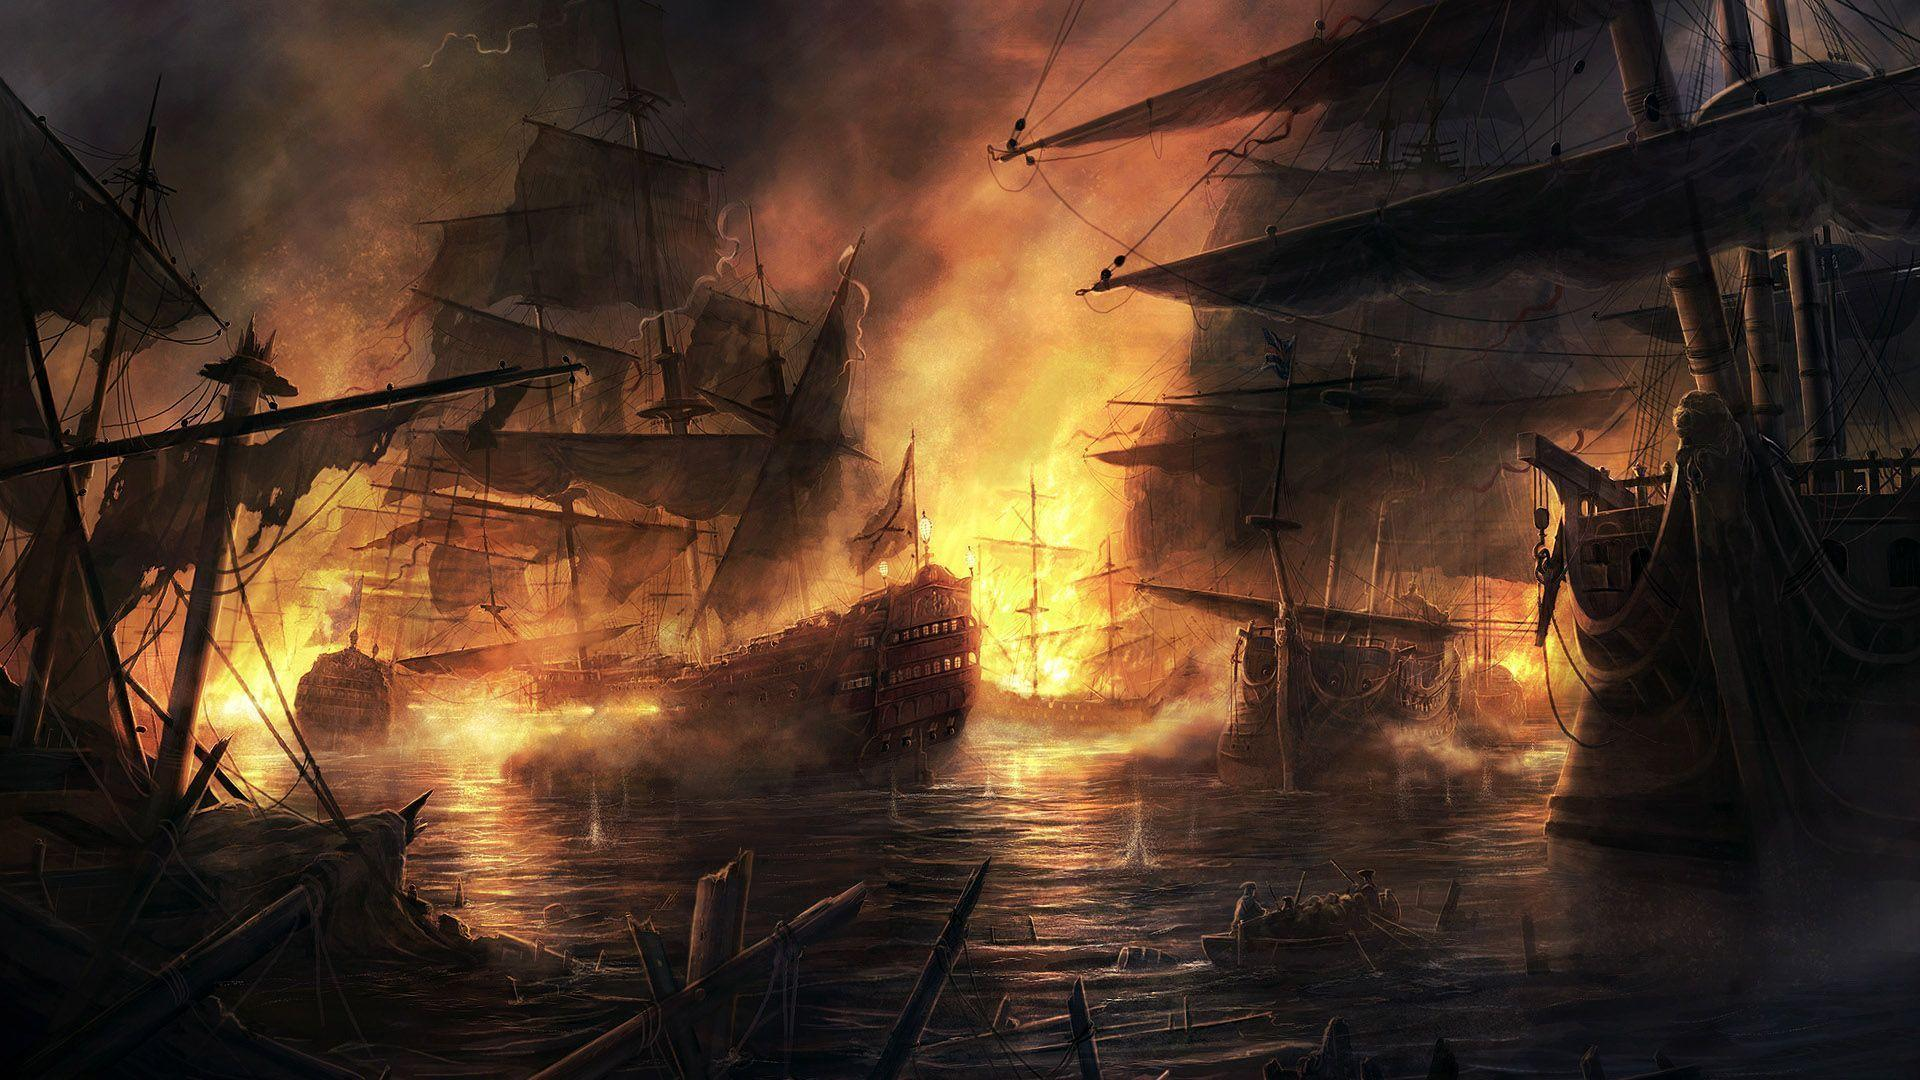 pirate ship computer wallpapers - photo #13